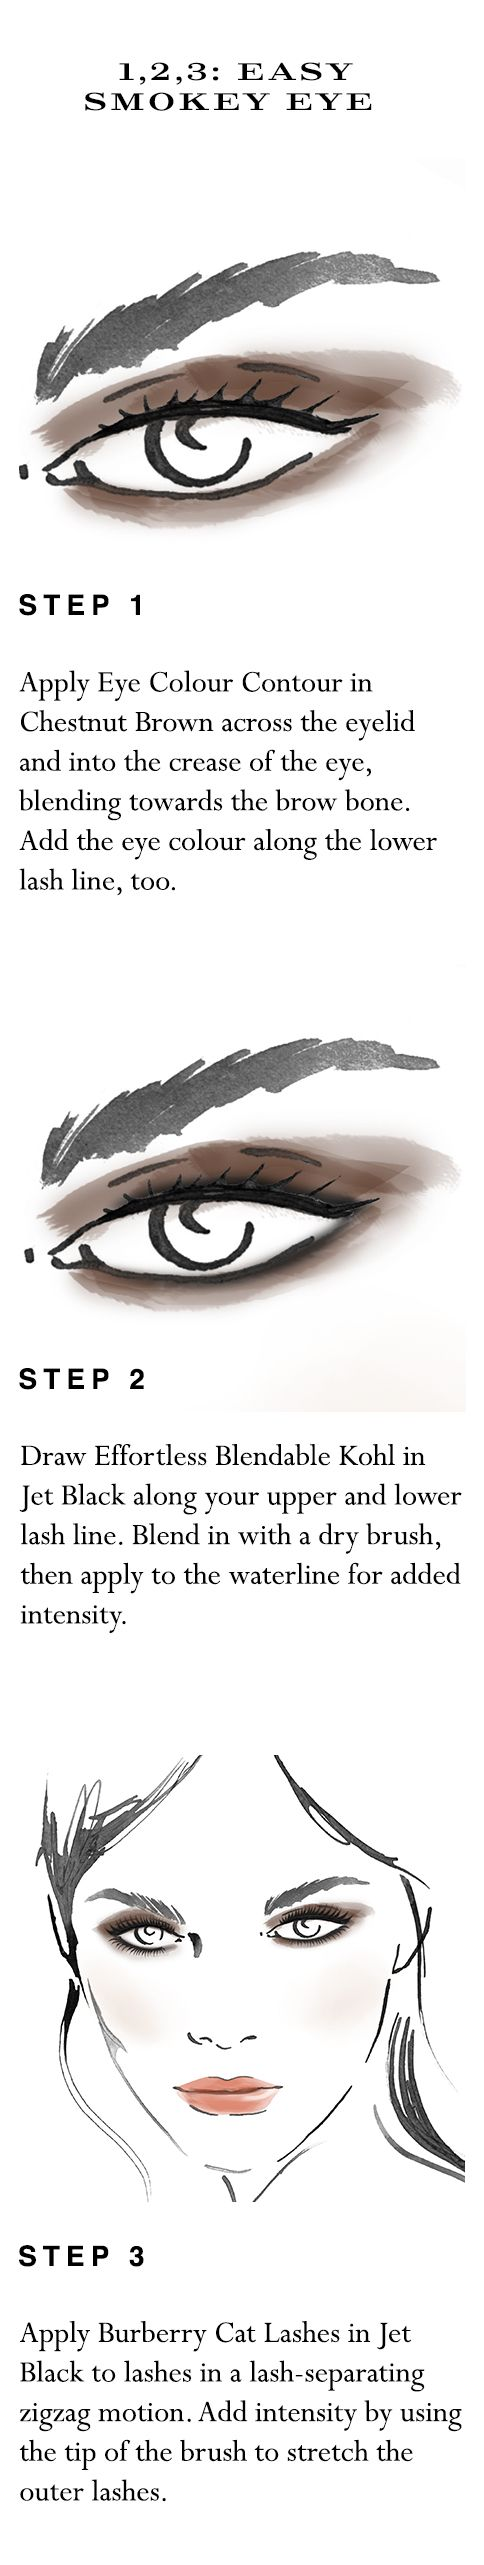 Find This Pin And More On How To Get Smokey Eyes In 5 Minutes, Made For Hkb